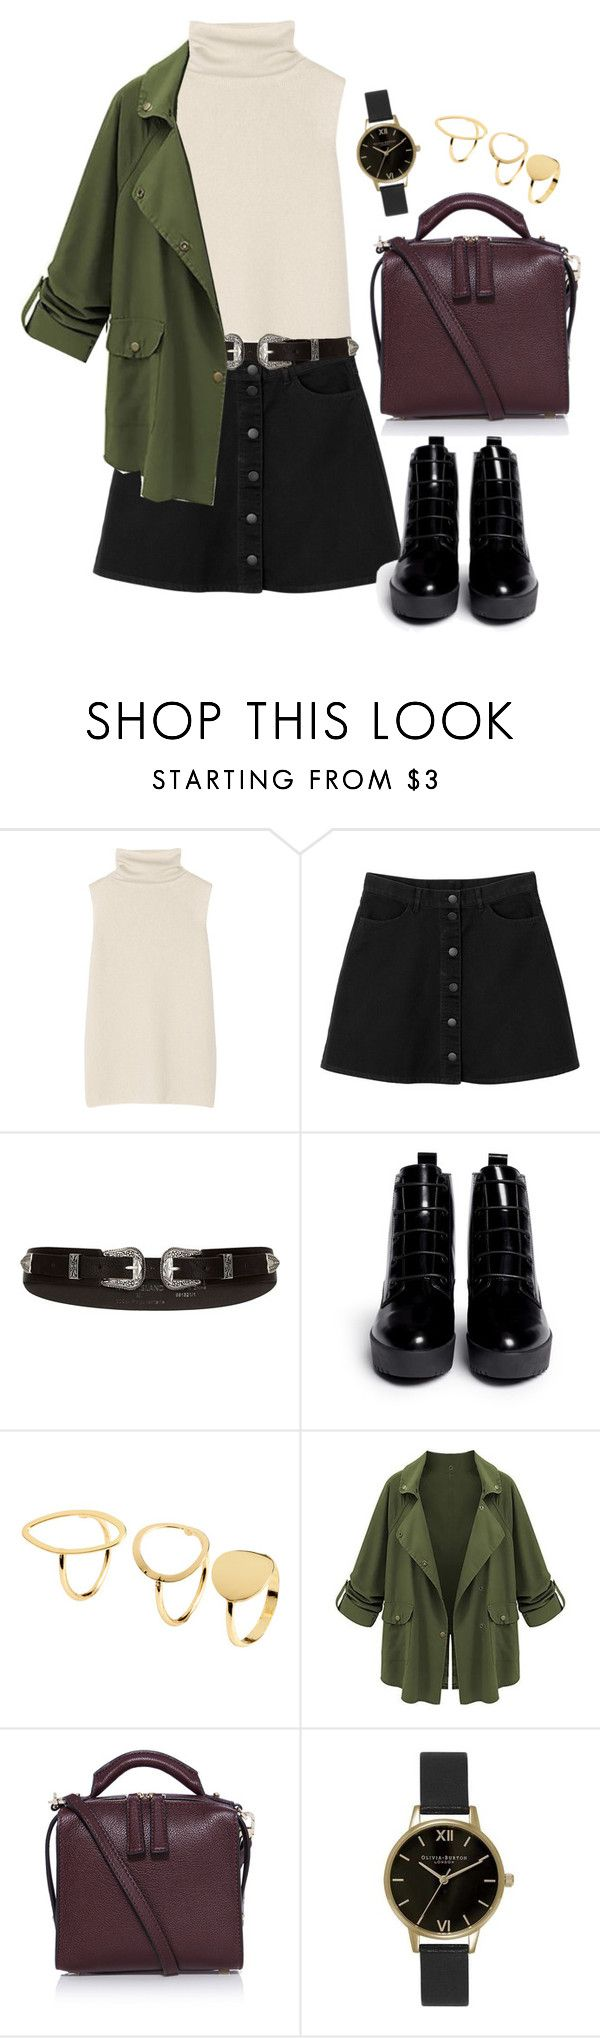 """Sin título #314"" by franciscagomezm on Polyvore featuring moda, The Row, Monki, River Island, Opening Ceremony, H&M y Topshop"